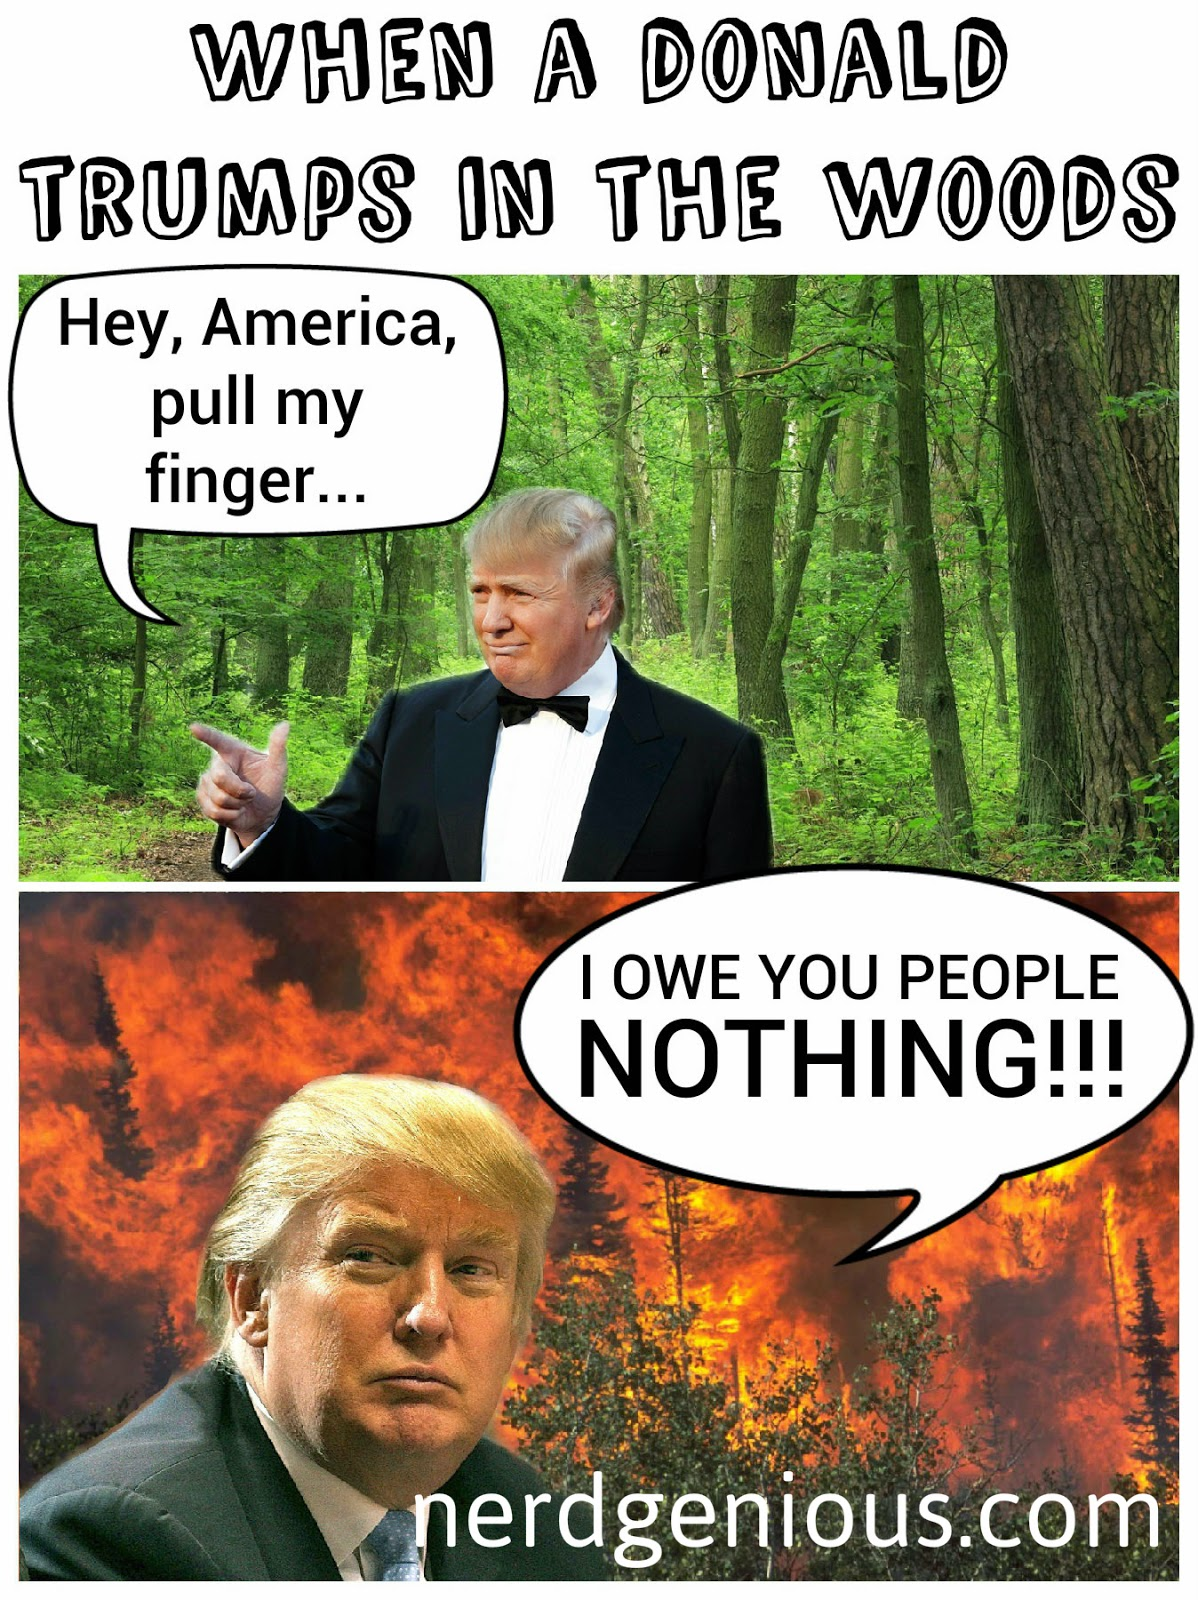 Donald Trump farts in the woods comic strip meme